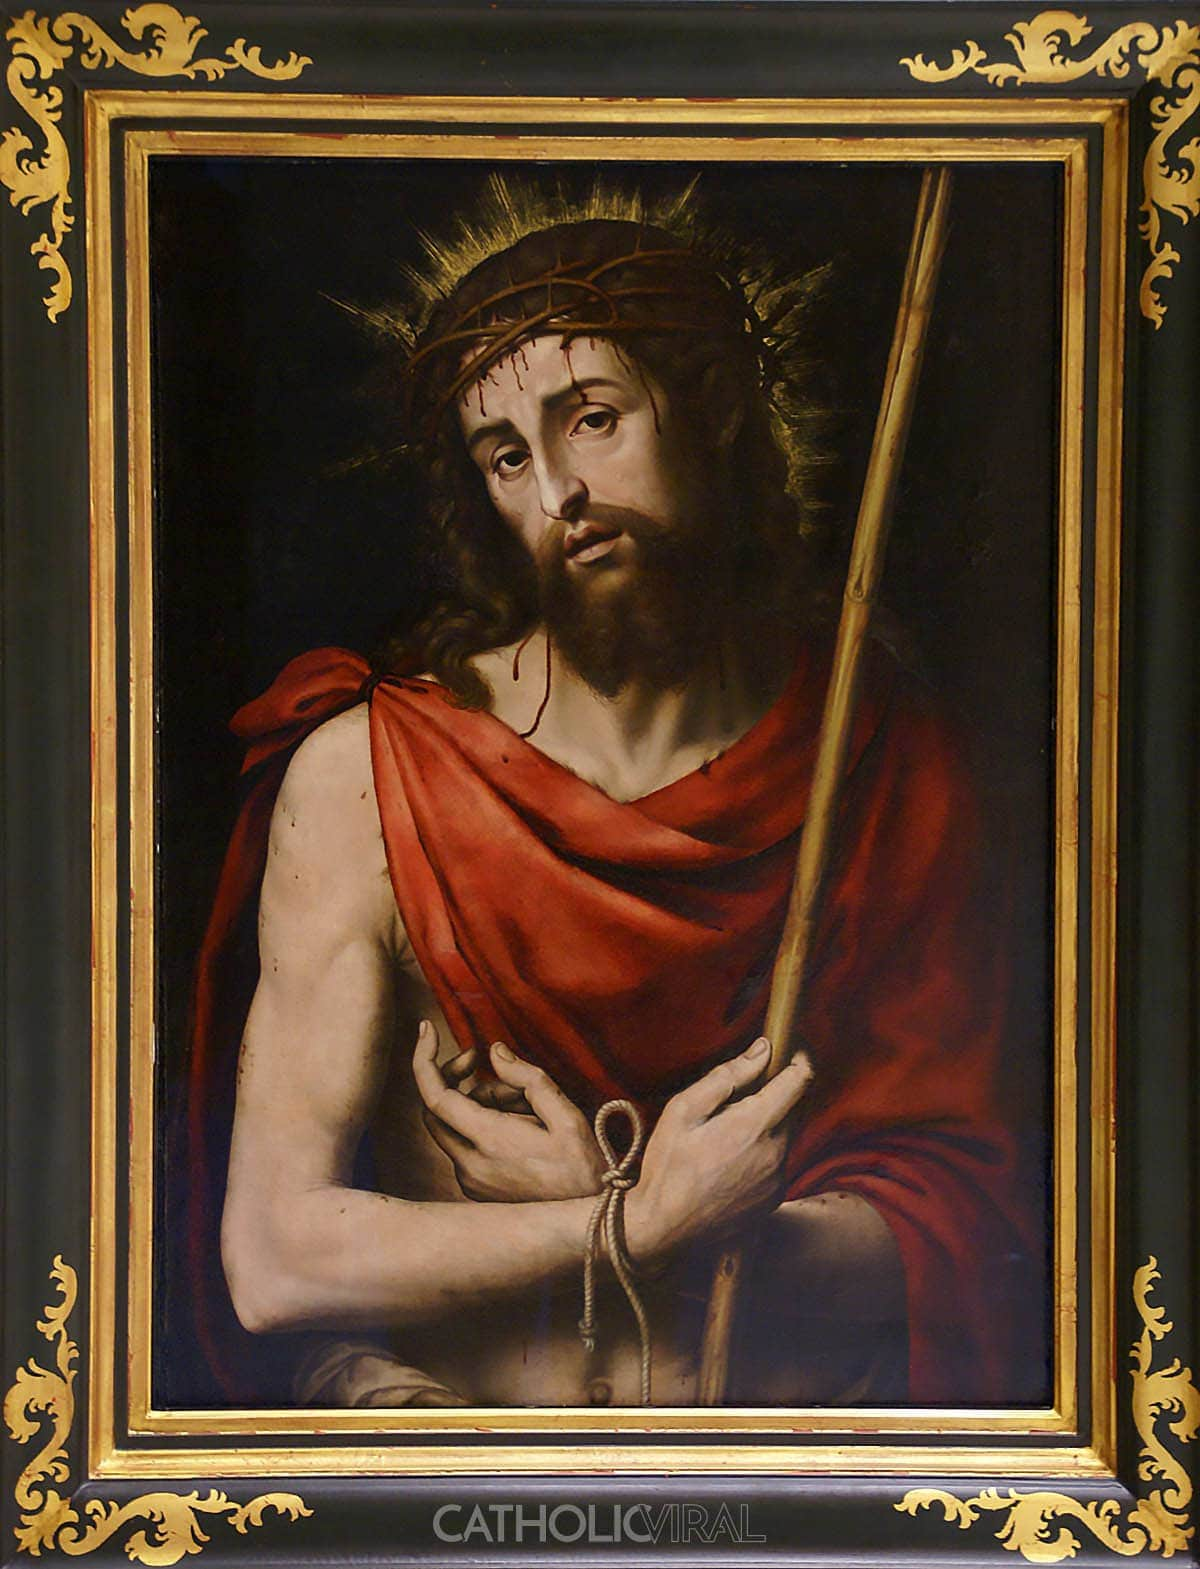 Ecce Homo - Juan de Juanes - 54 Paintings of the Passion, Death and Resurrection of Jesus Christ